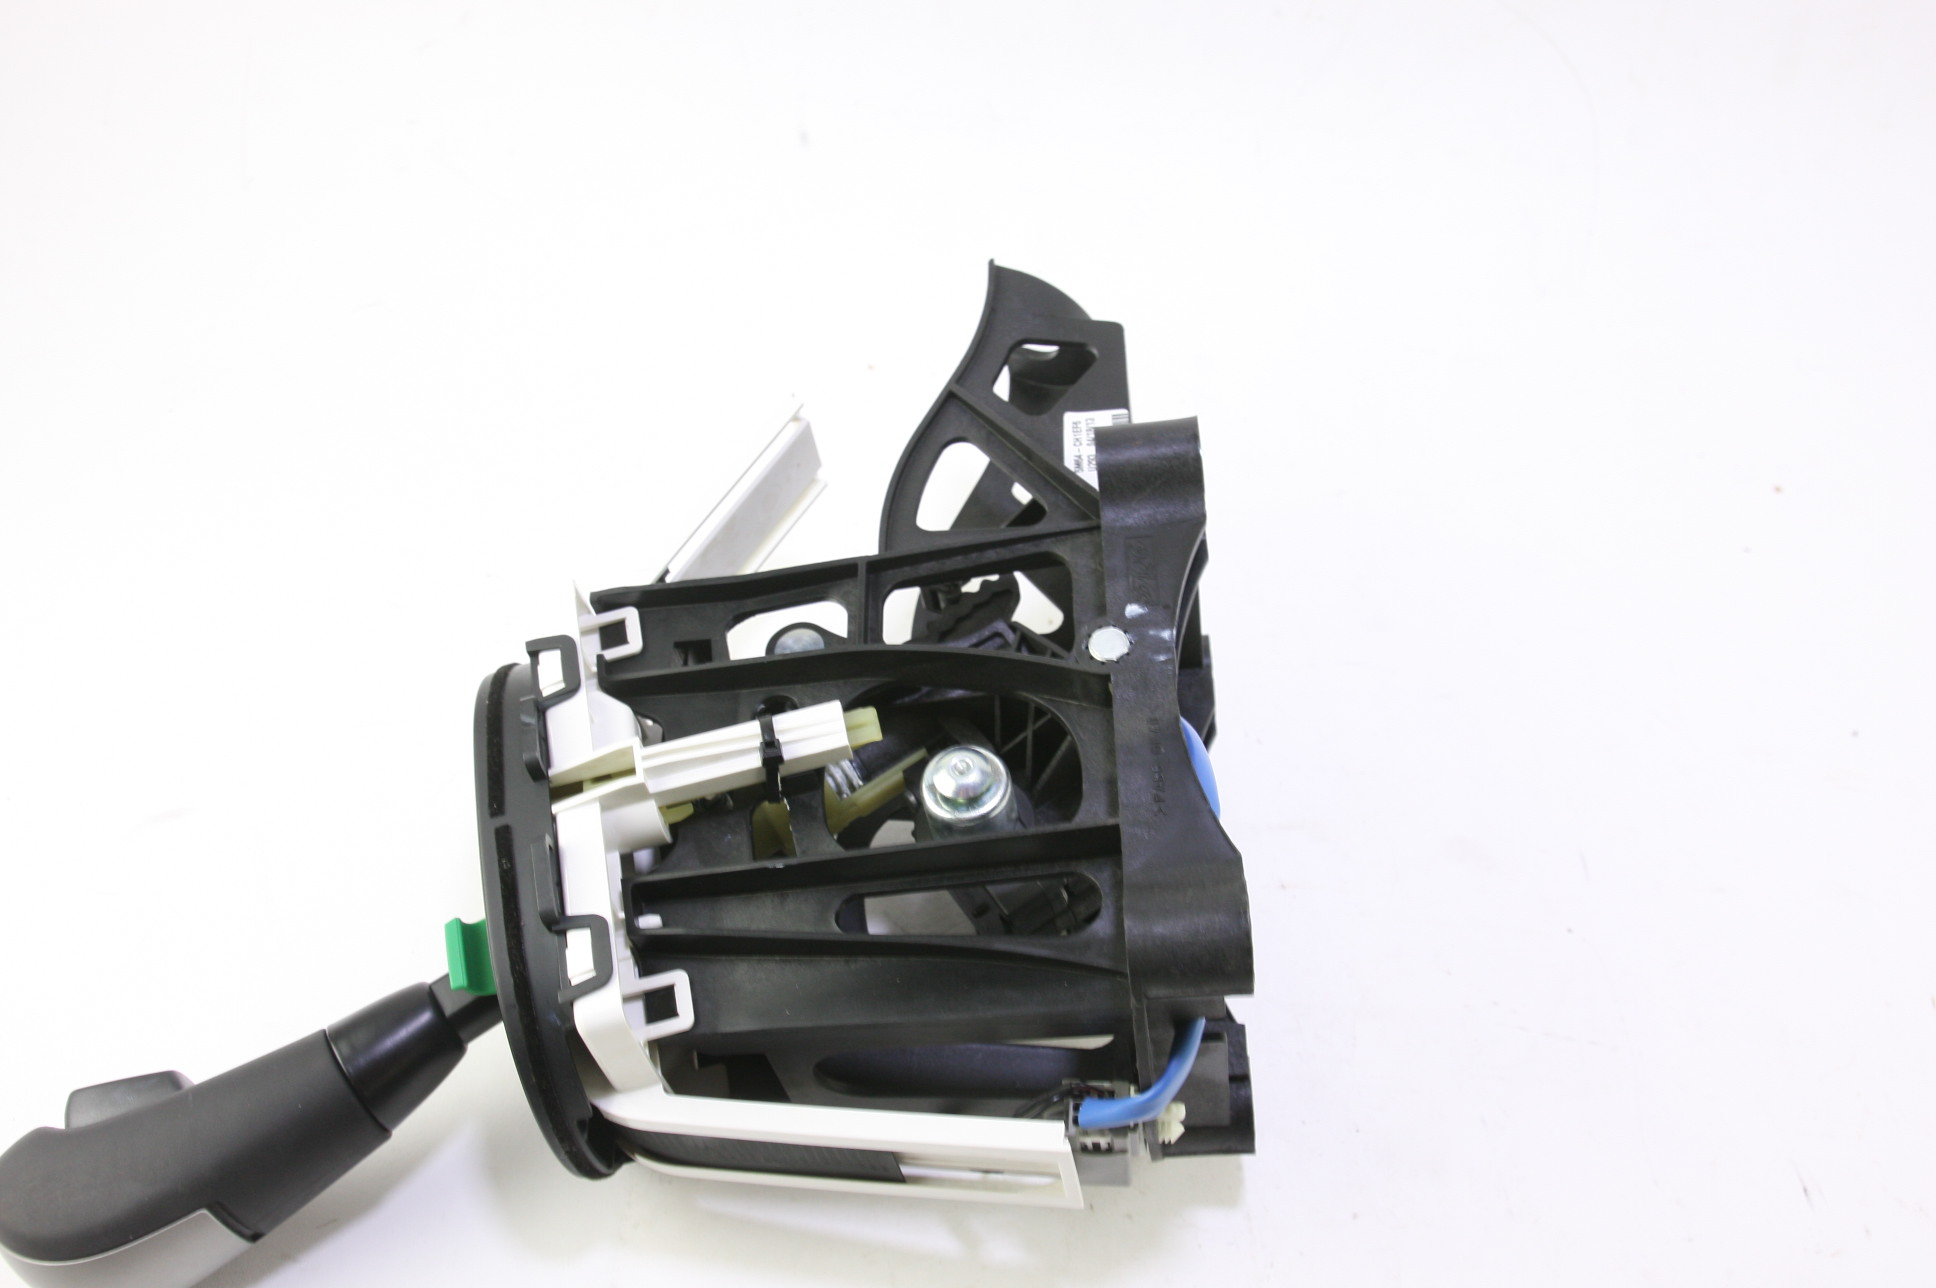 *New OEM 5M6Z7210C Ford 05-07 Escape Transmission Gear Shifter Housing Assy - image 6